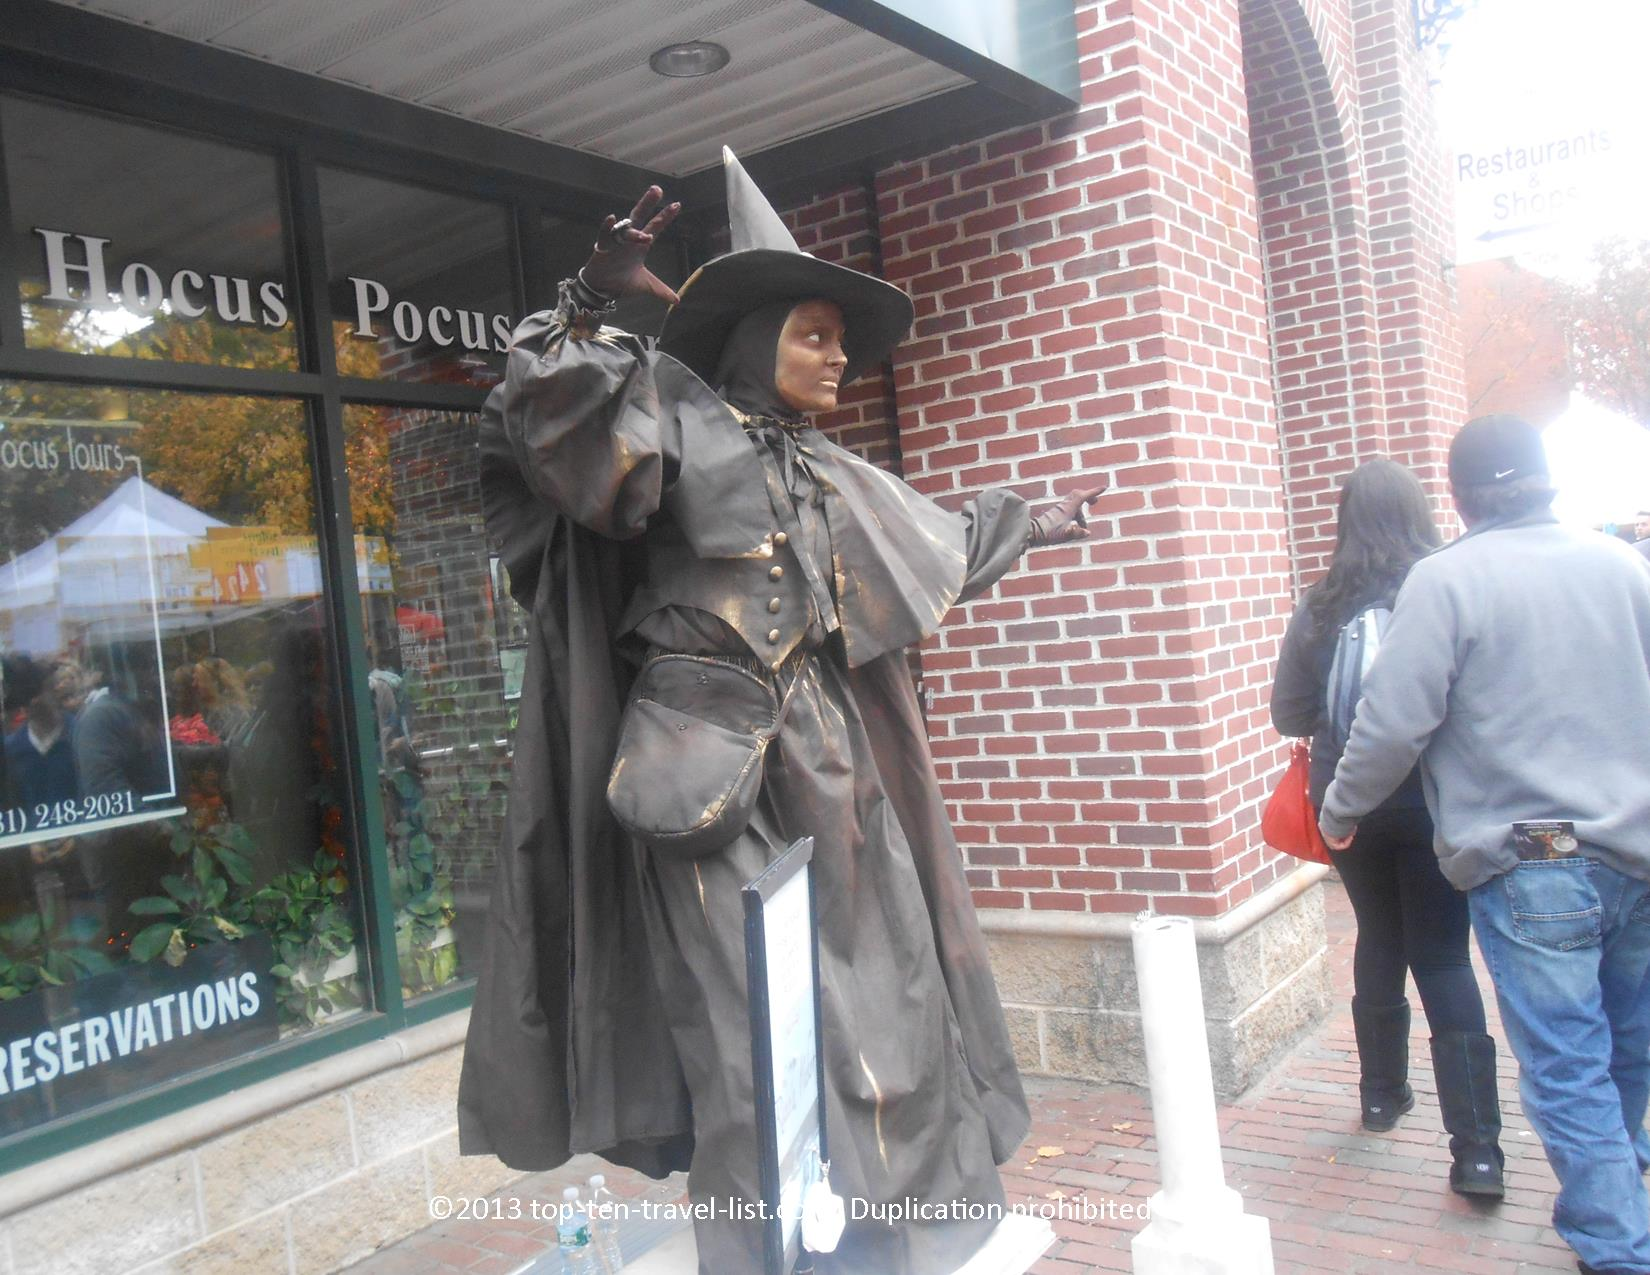 Hocus Pocus tours offers year-round 90 minute tours of hotspots throughout town including Hocus Pocus filming locations, the Witch Trials memorial, and more!